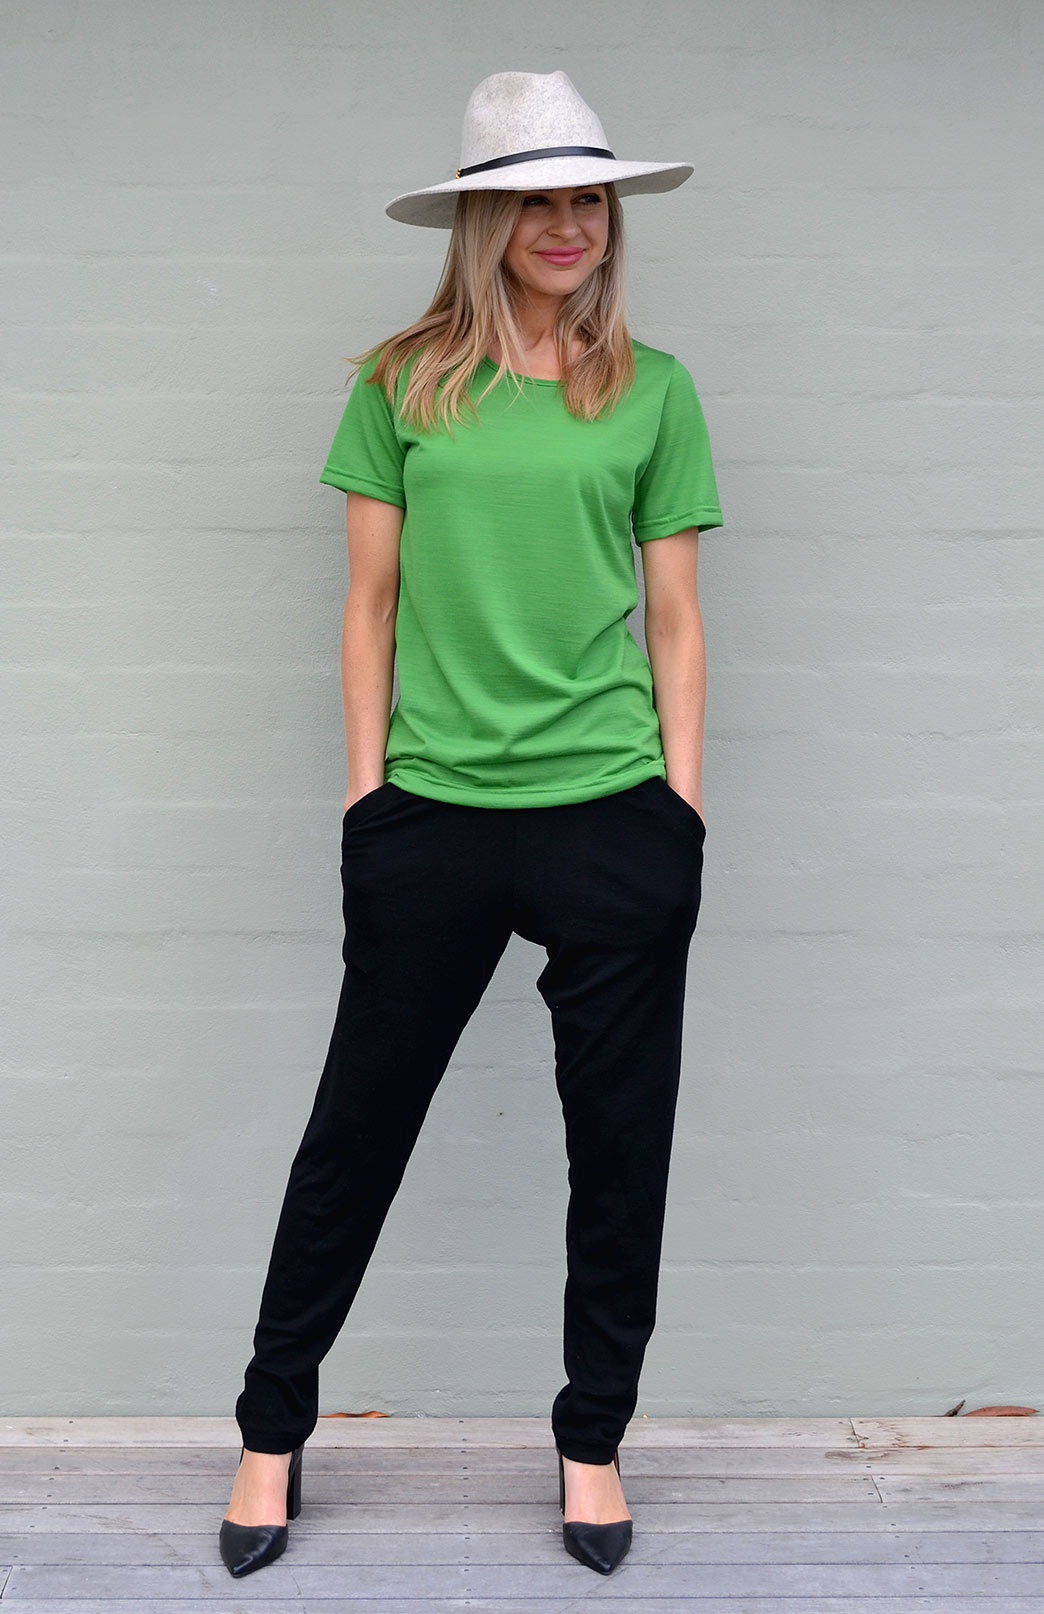 Rubie Top - Women's Pure Merino Wool Apple Green Short Sleeved Round Neck Top - Smitten Merino Tasmania Australia